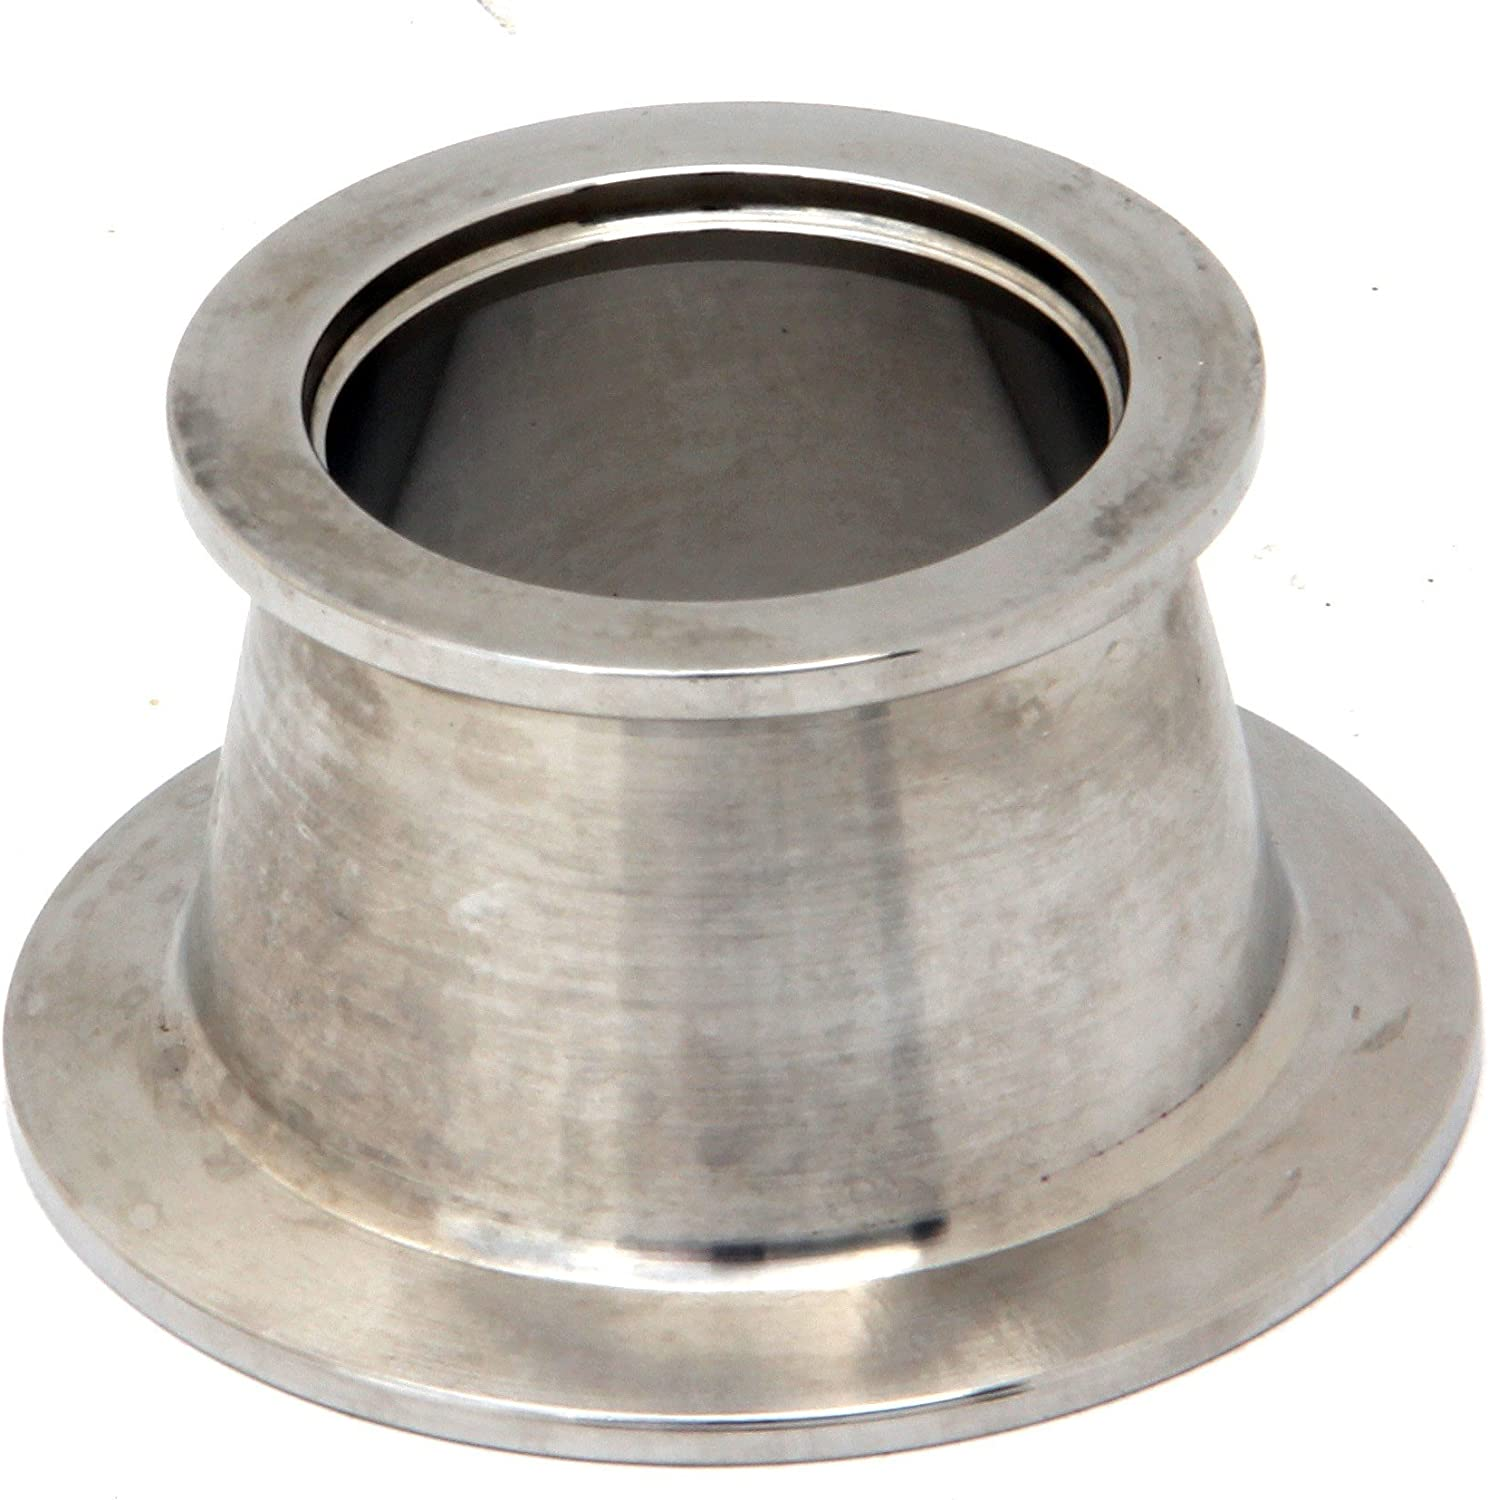 NW-40 to NW-25 R KF-40 to KF-25 HFS Conical Reducer Stainless Steel 304; USA